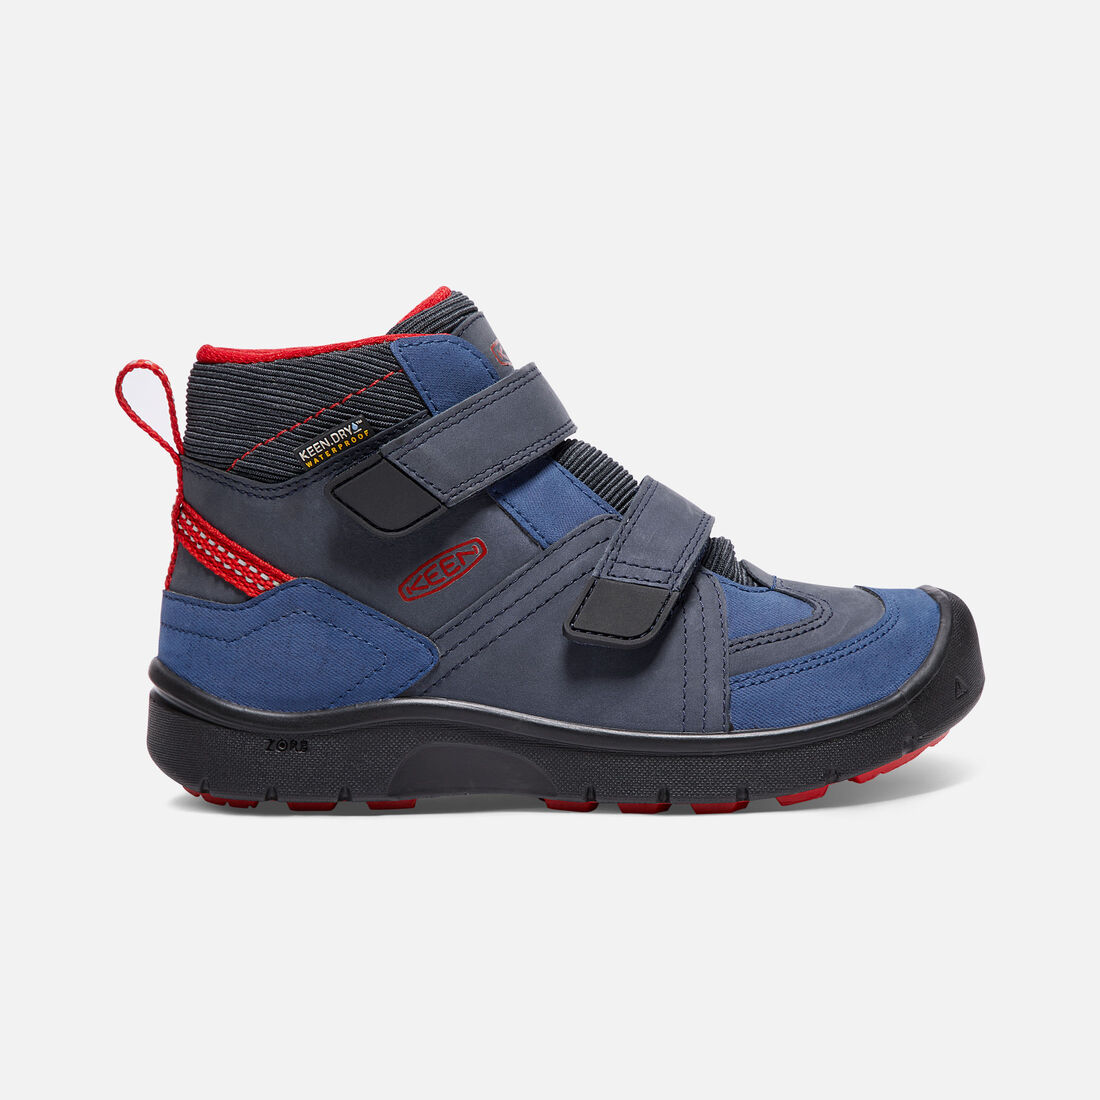 Big Kids' HIKEPORT STRAP Waterproof Mid in Dress Blues/Blue Nights - large view.